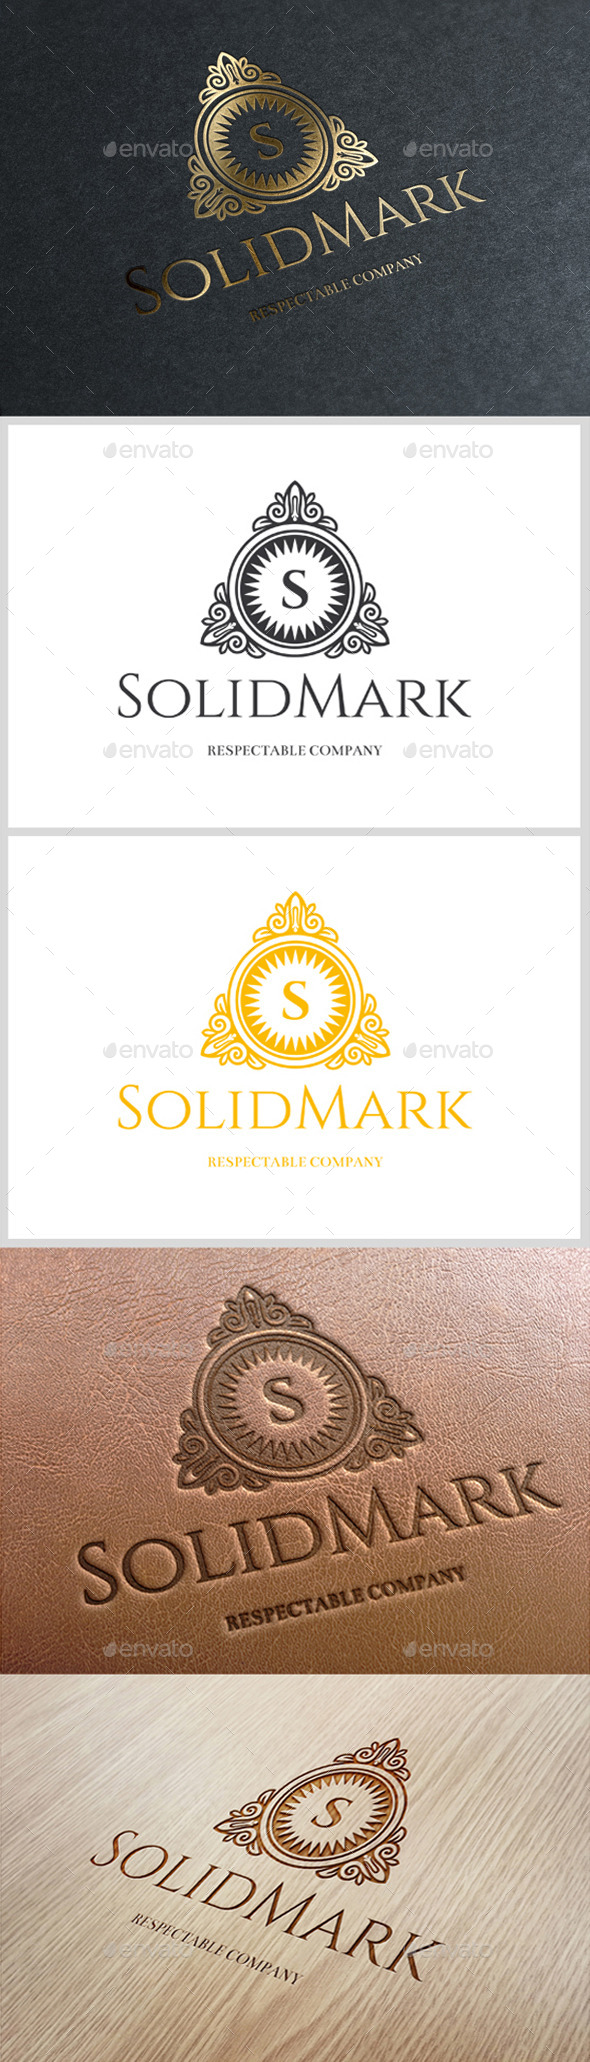 GraphicRiver SolidMark Logo 10935408